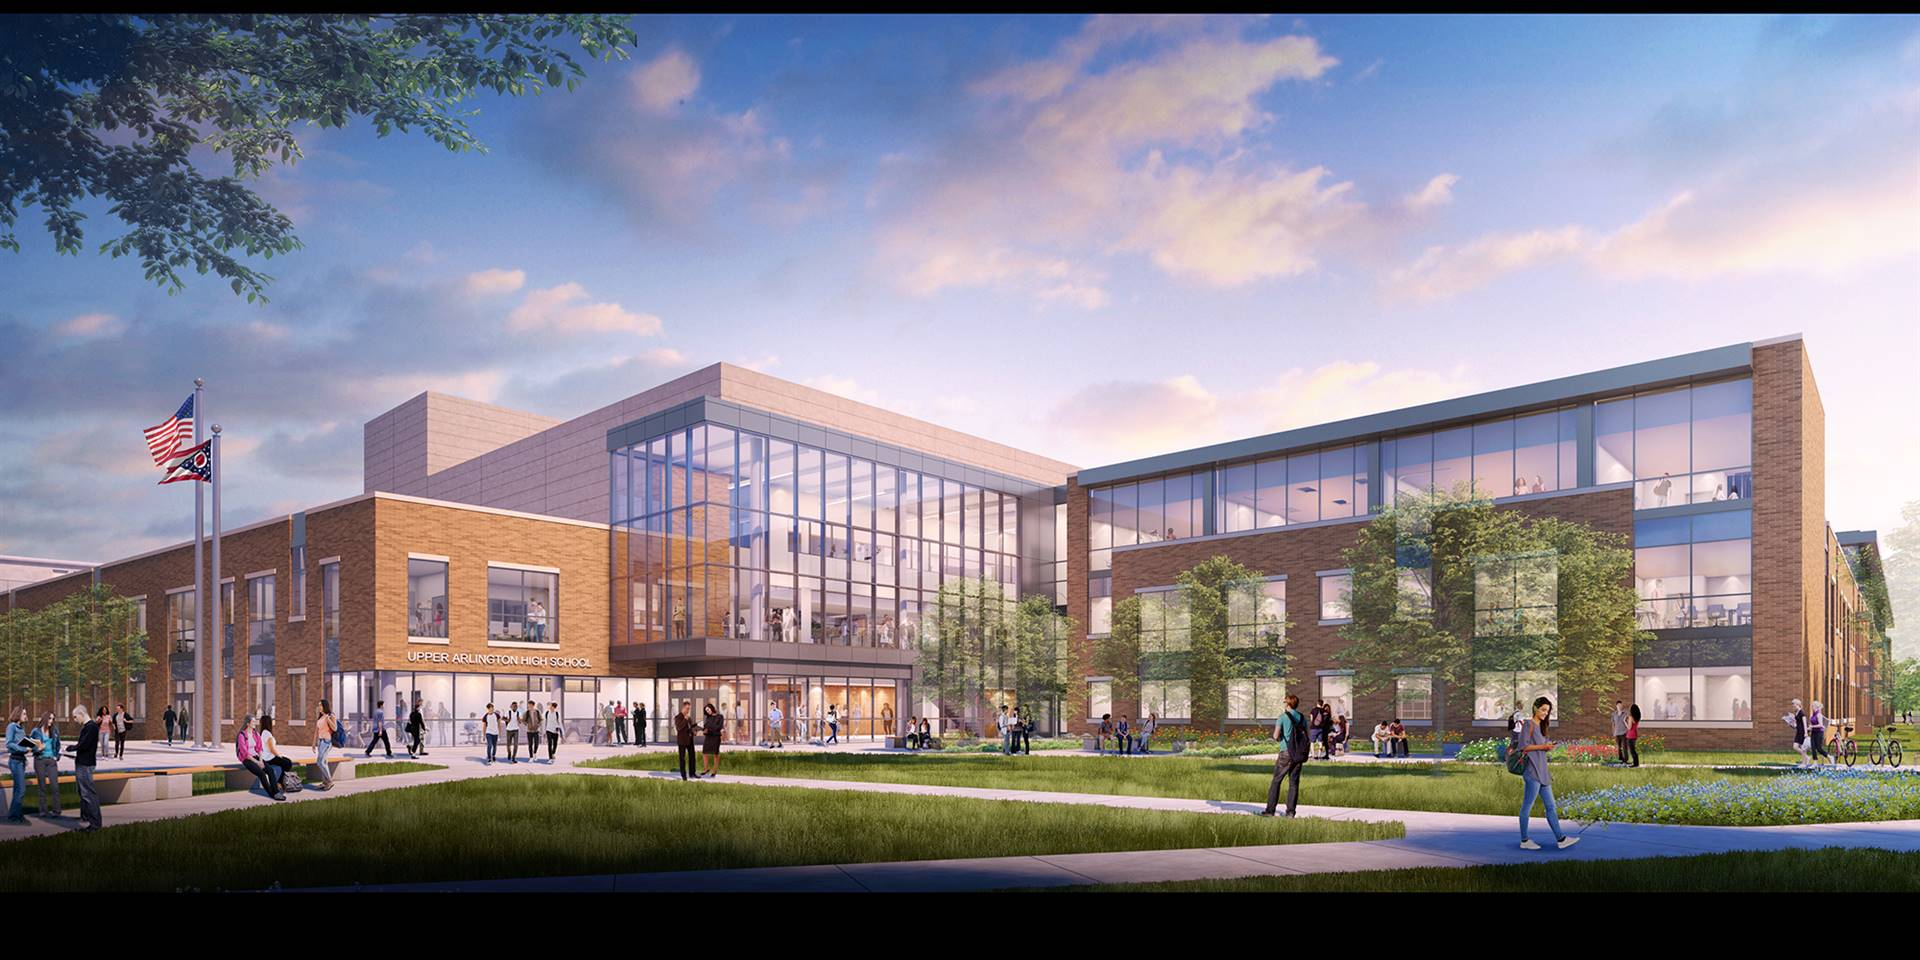 The new main entrance to Upper Arlington High School